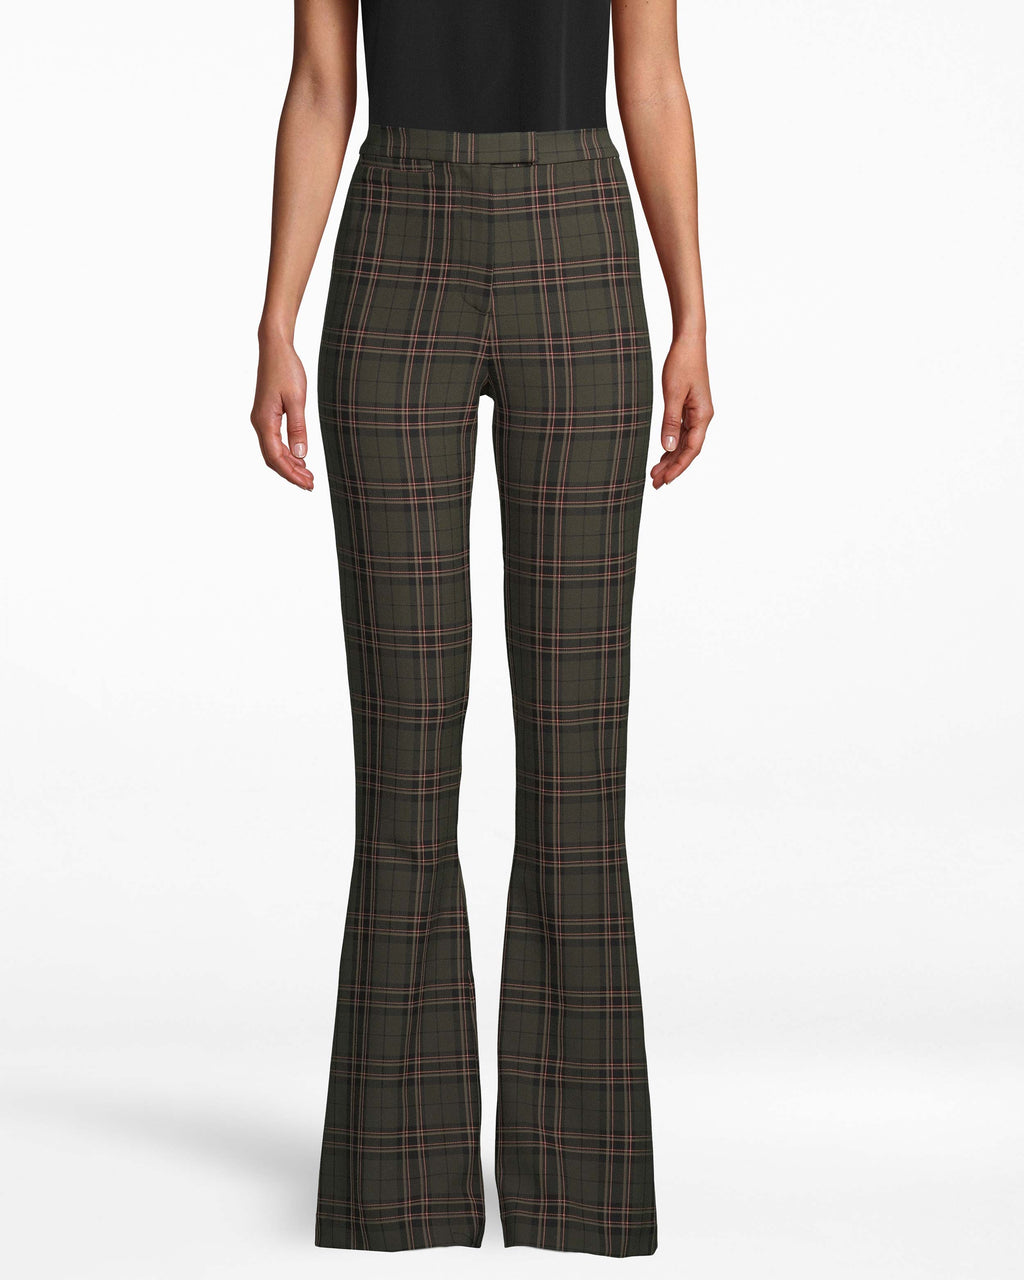 CP18016 - JAGGER PLAID BELL BOTTOM PANT - bottoms - pants - These ultra chic pants feature a slimming bell bottom silhouette and timeless plaid print. Featuring a hidden hook and bar and zipper for closure for a tailored look. These floor length pants pair with everything from fashion sneakers to heels. Add 1 line break Stylist tip: Style with one of our new cashmere sweaters for an effortless look.